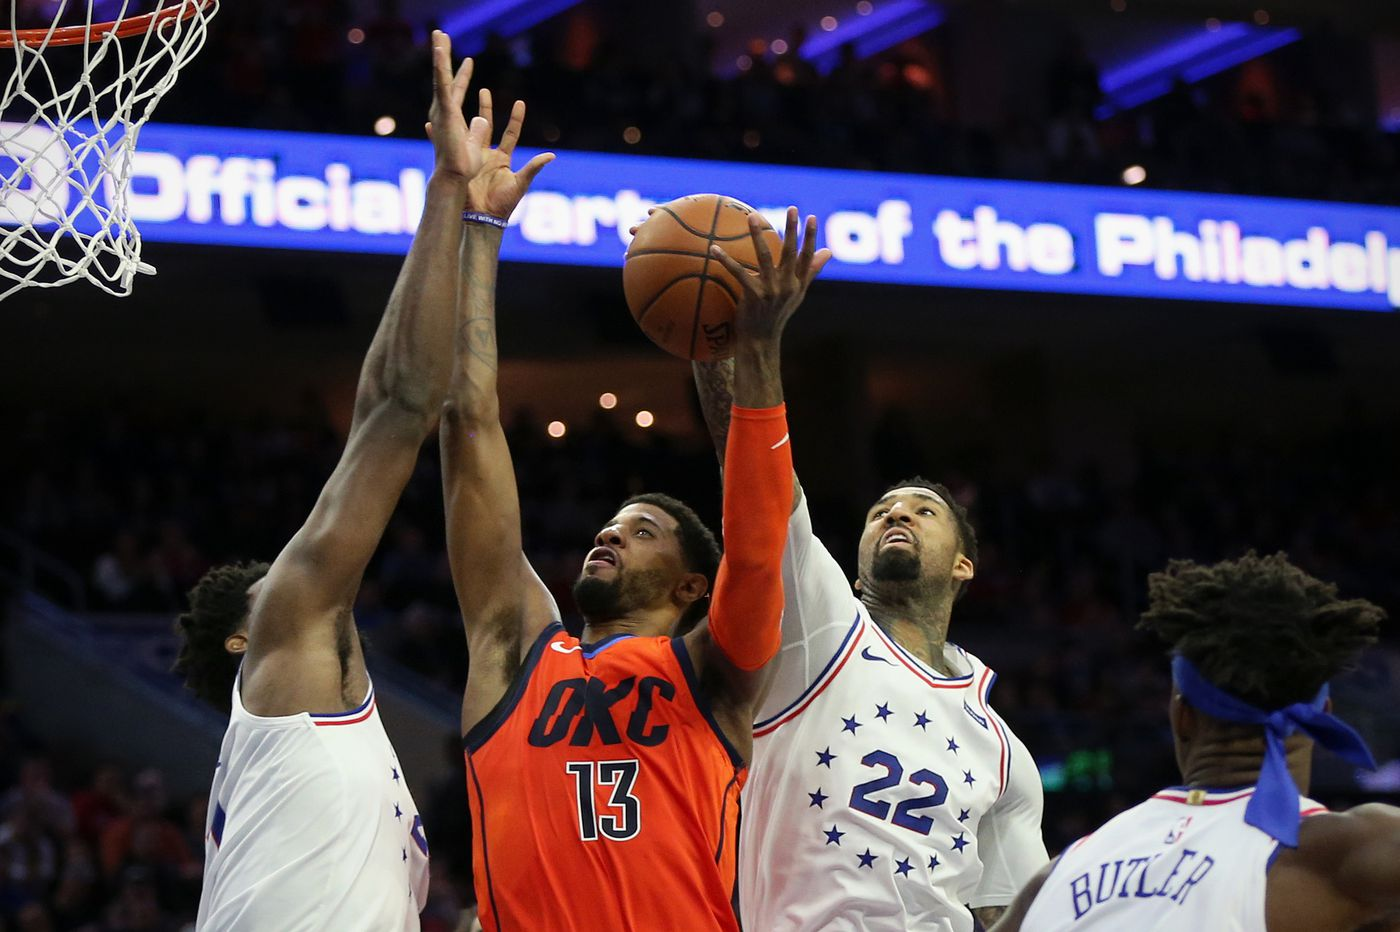 Paul George's Heroics Led The Thunder To A Thrilling Win In Philadelphia